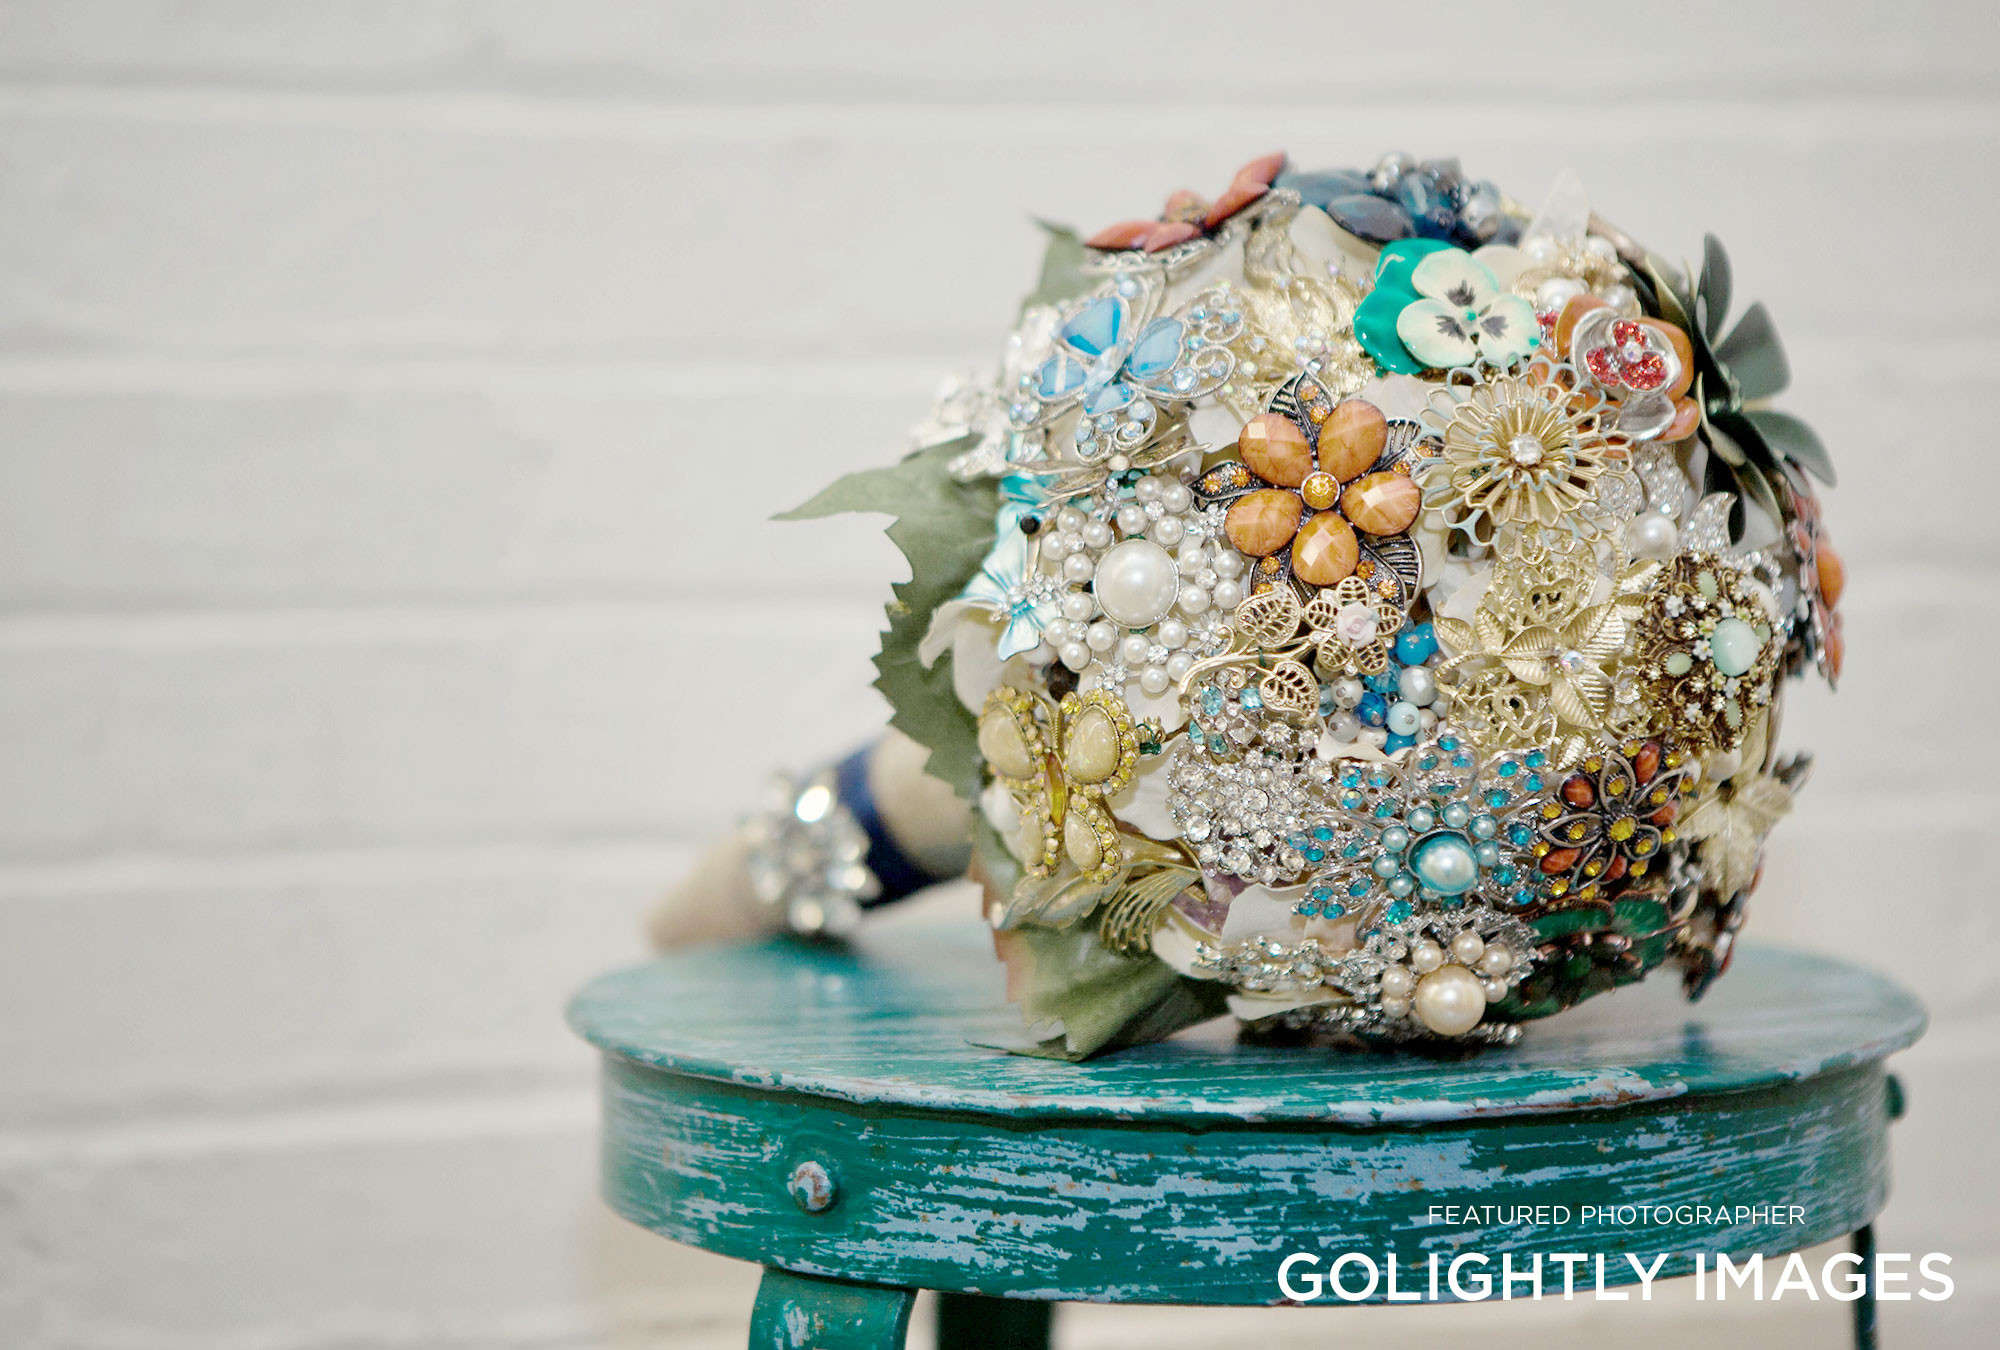 Golightly Images